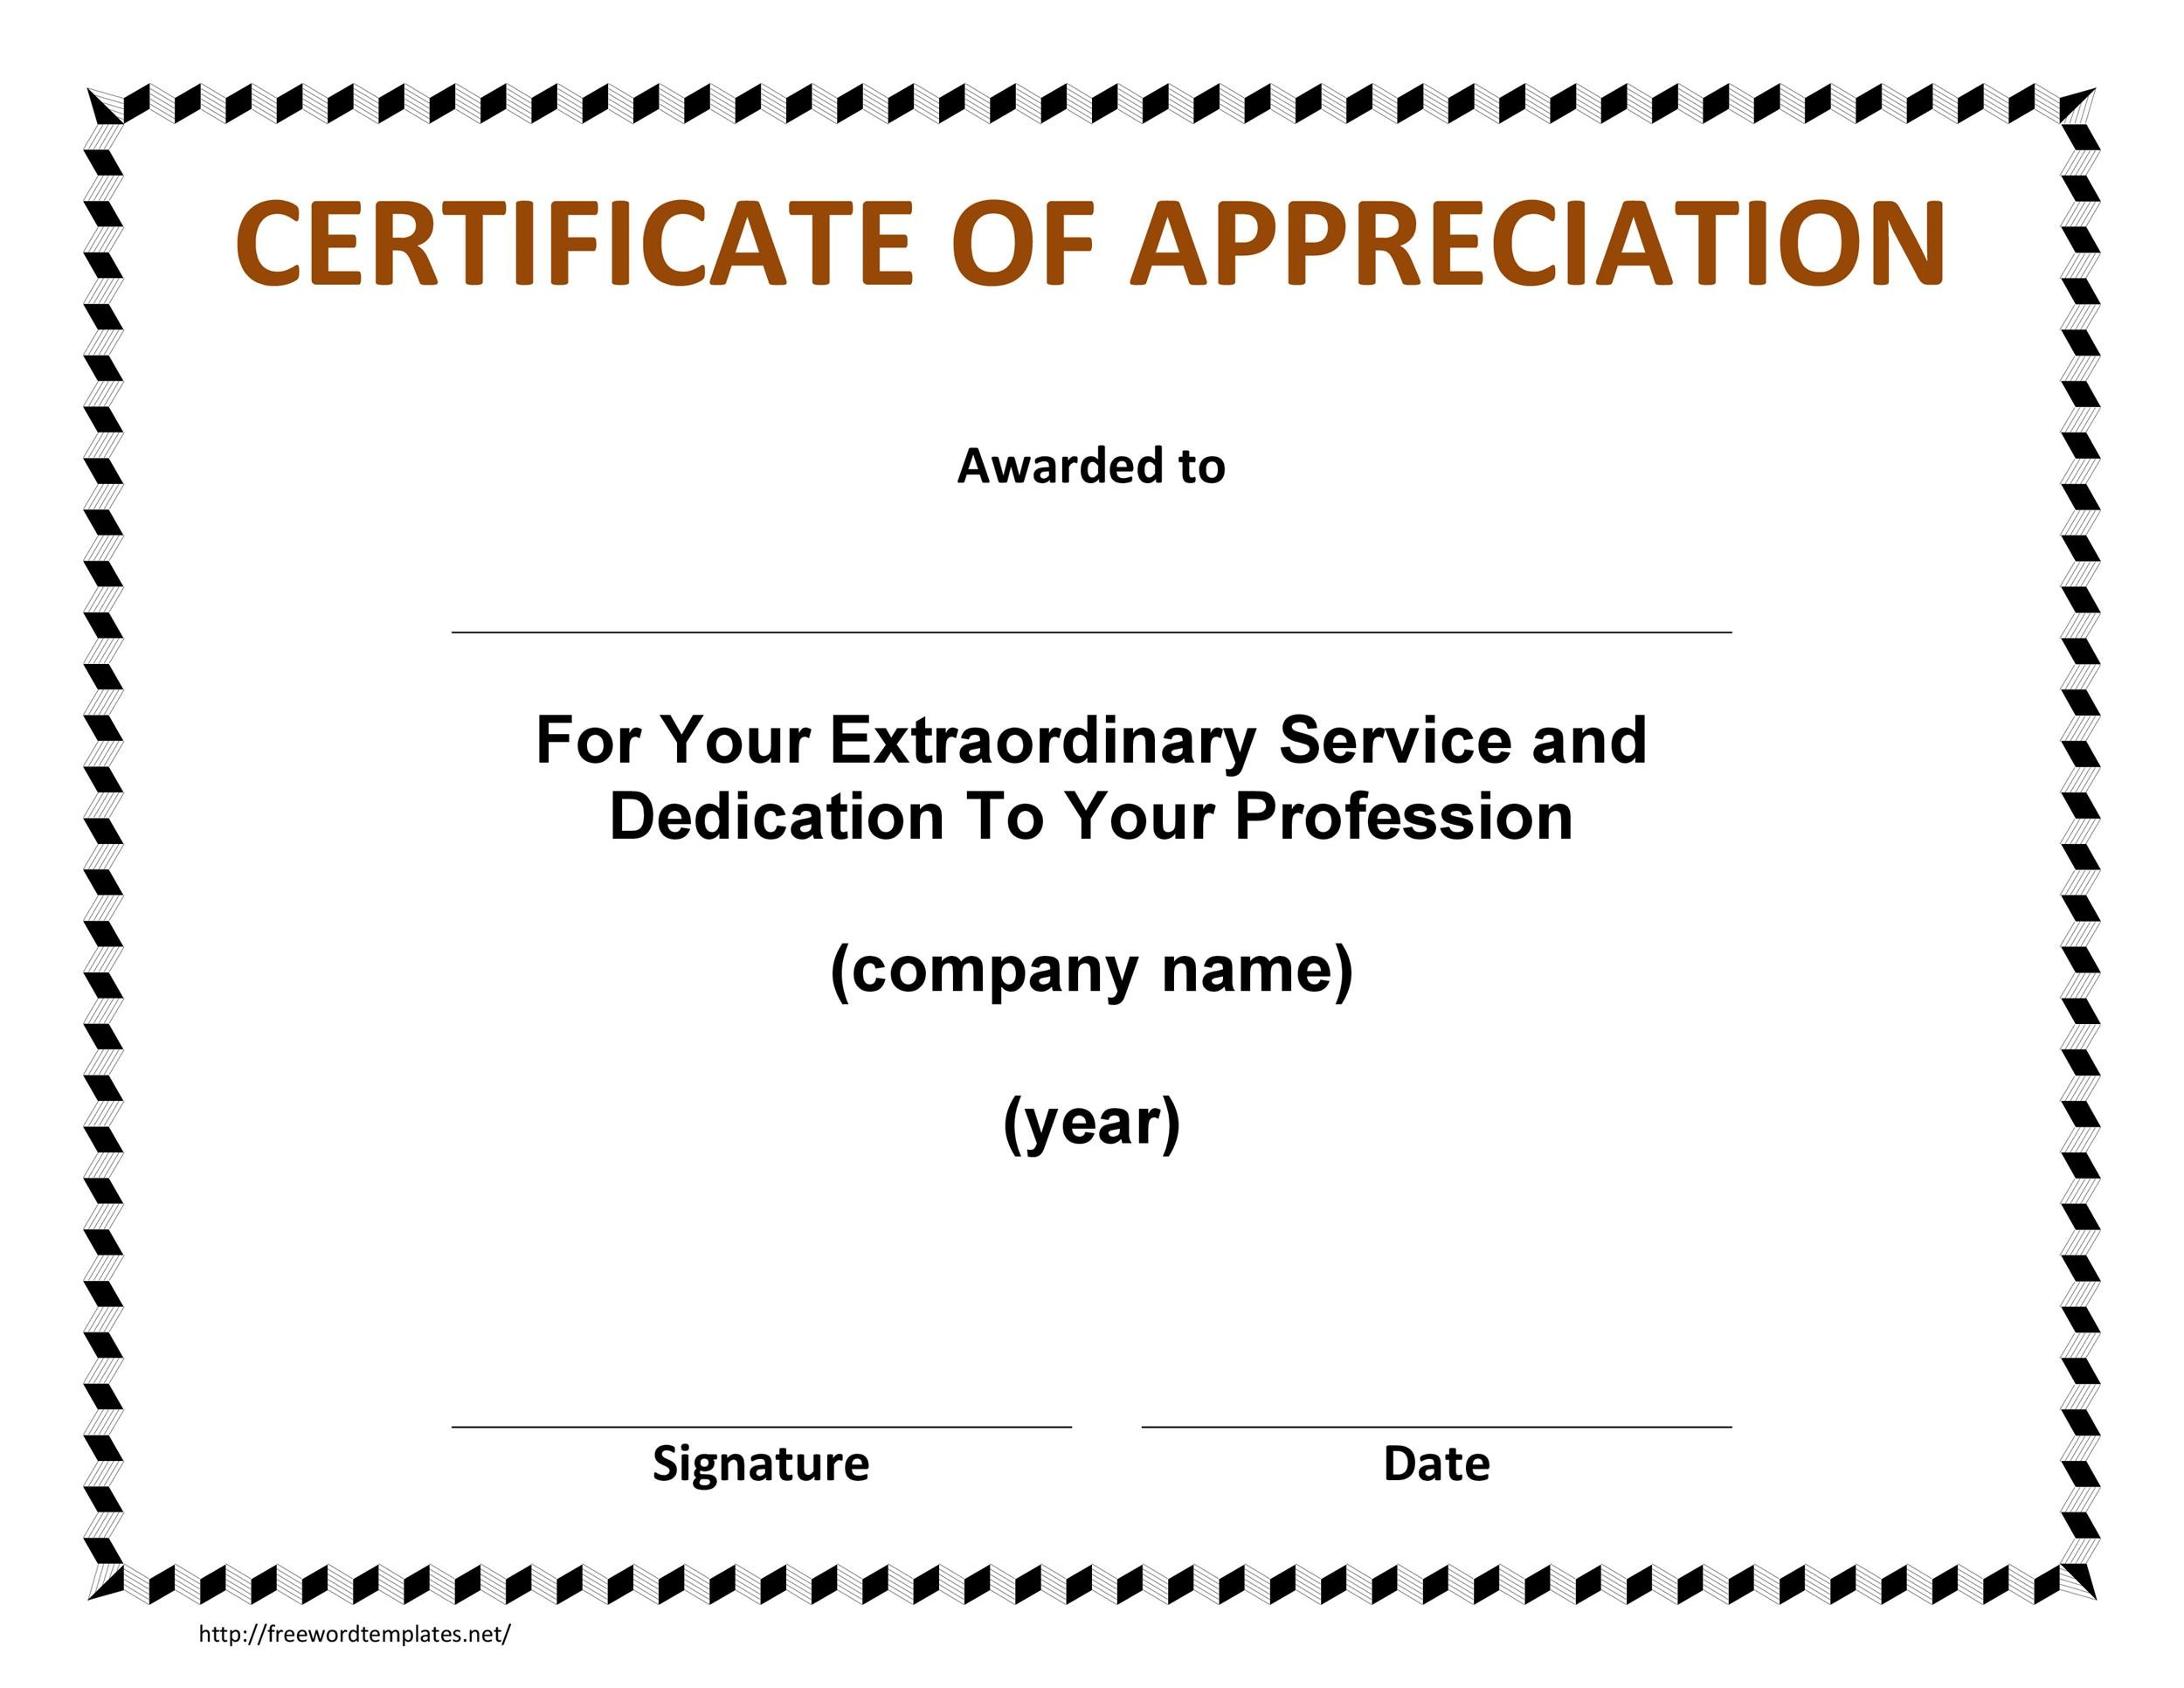 30 free certificate of appreciation templates and letters free certificate of appreciation 04 spiritdancerdesigns Images